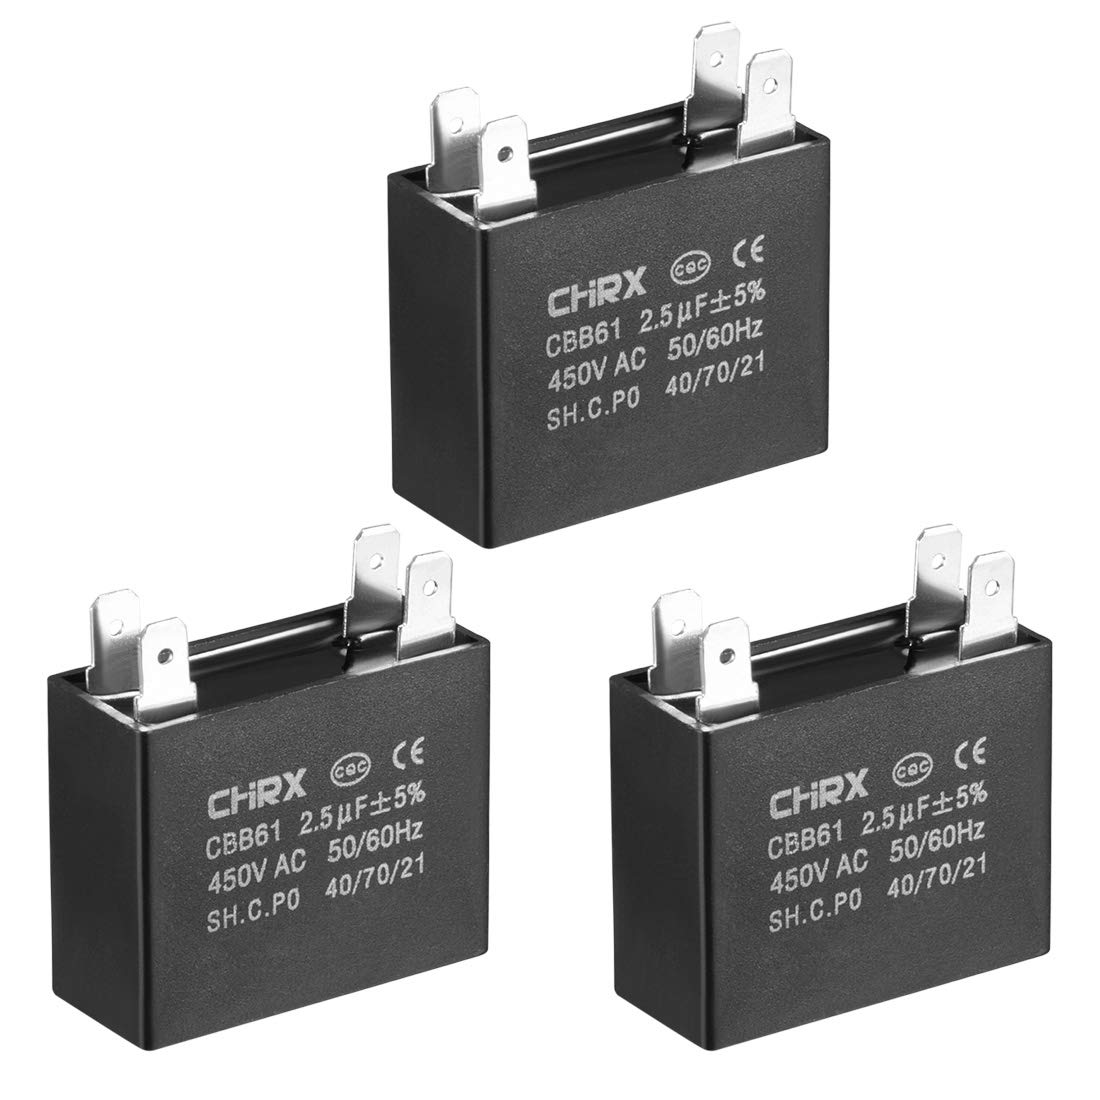 uxcell CBB61 Run Capacitor 450V AC 4uF Doule Insert Metallized Polypropylene Film Capacitors for Ceiling Fan 4pcs